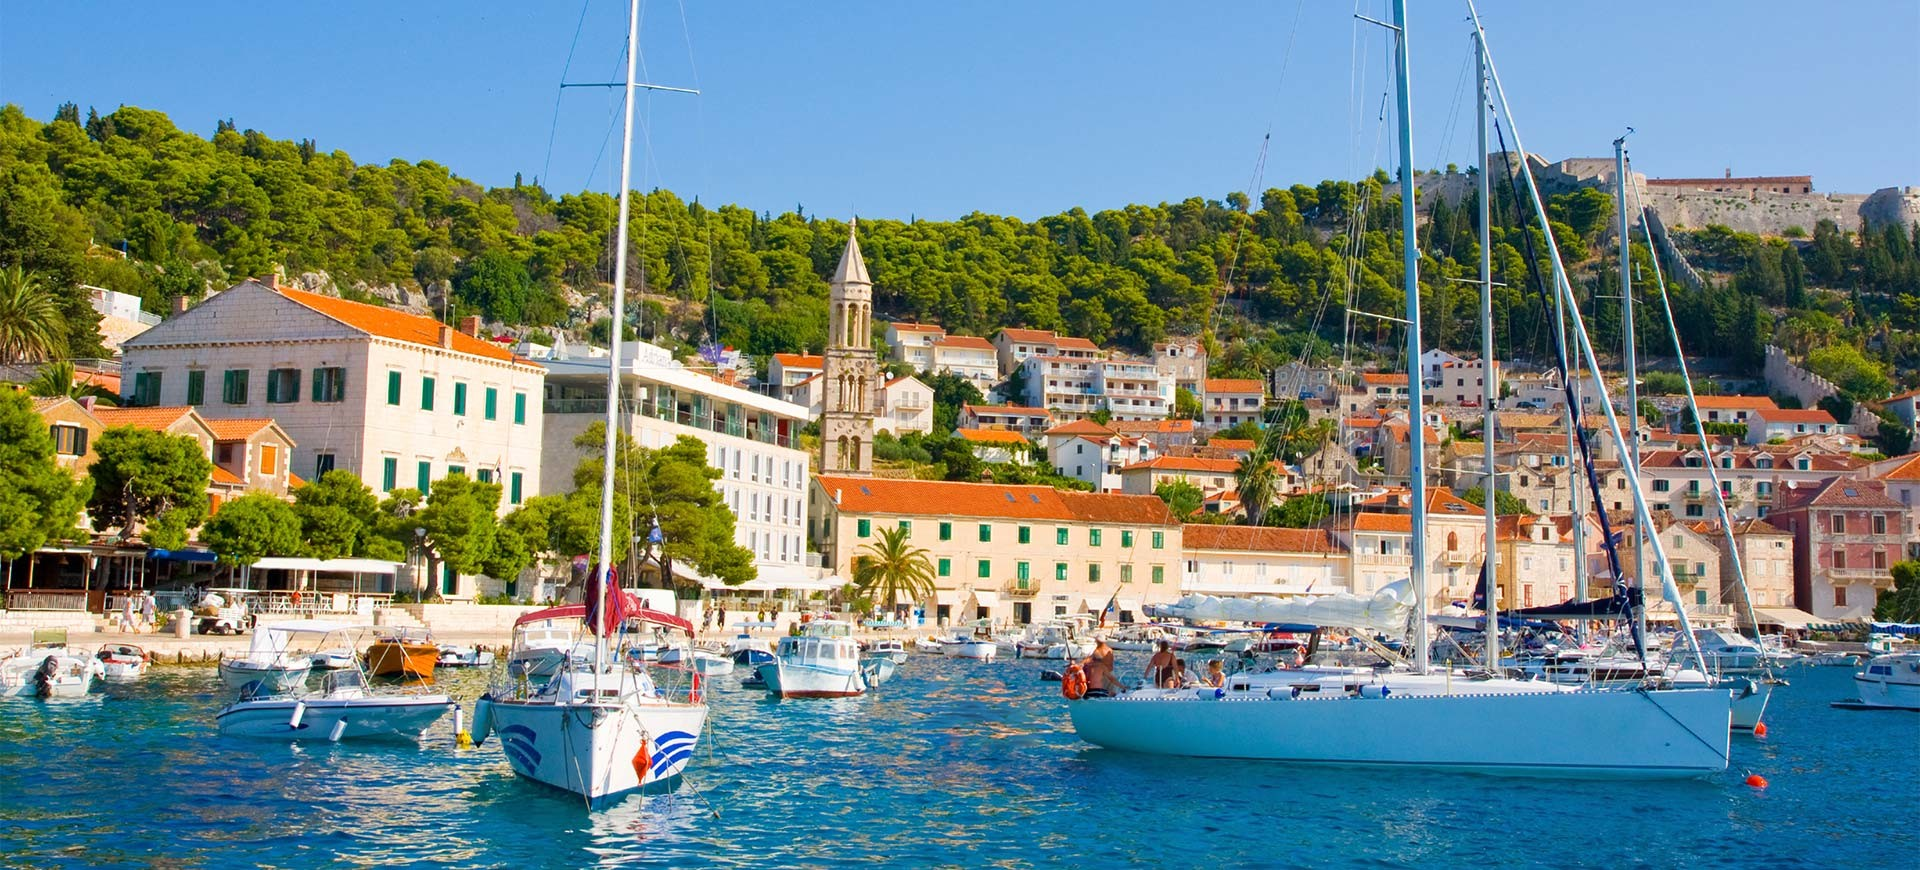 14 Days Sailing (One Way Route): Kaštela - Dubrovnik